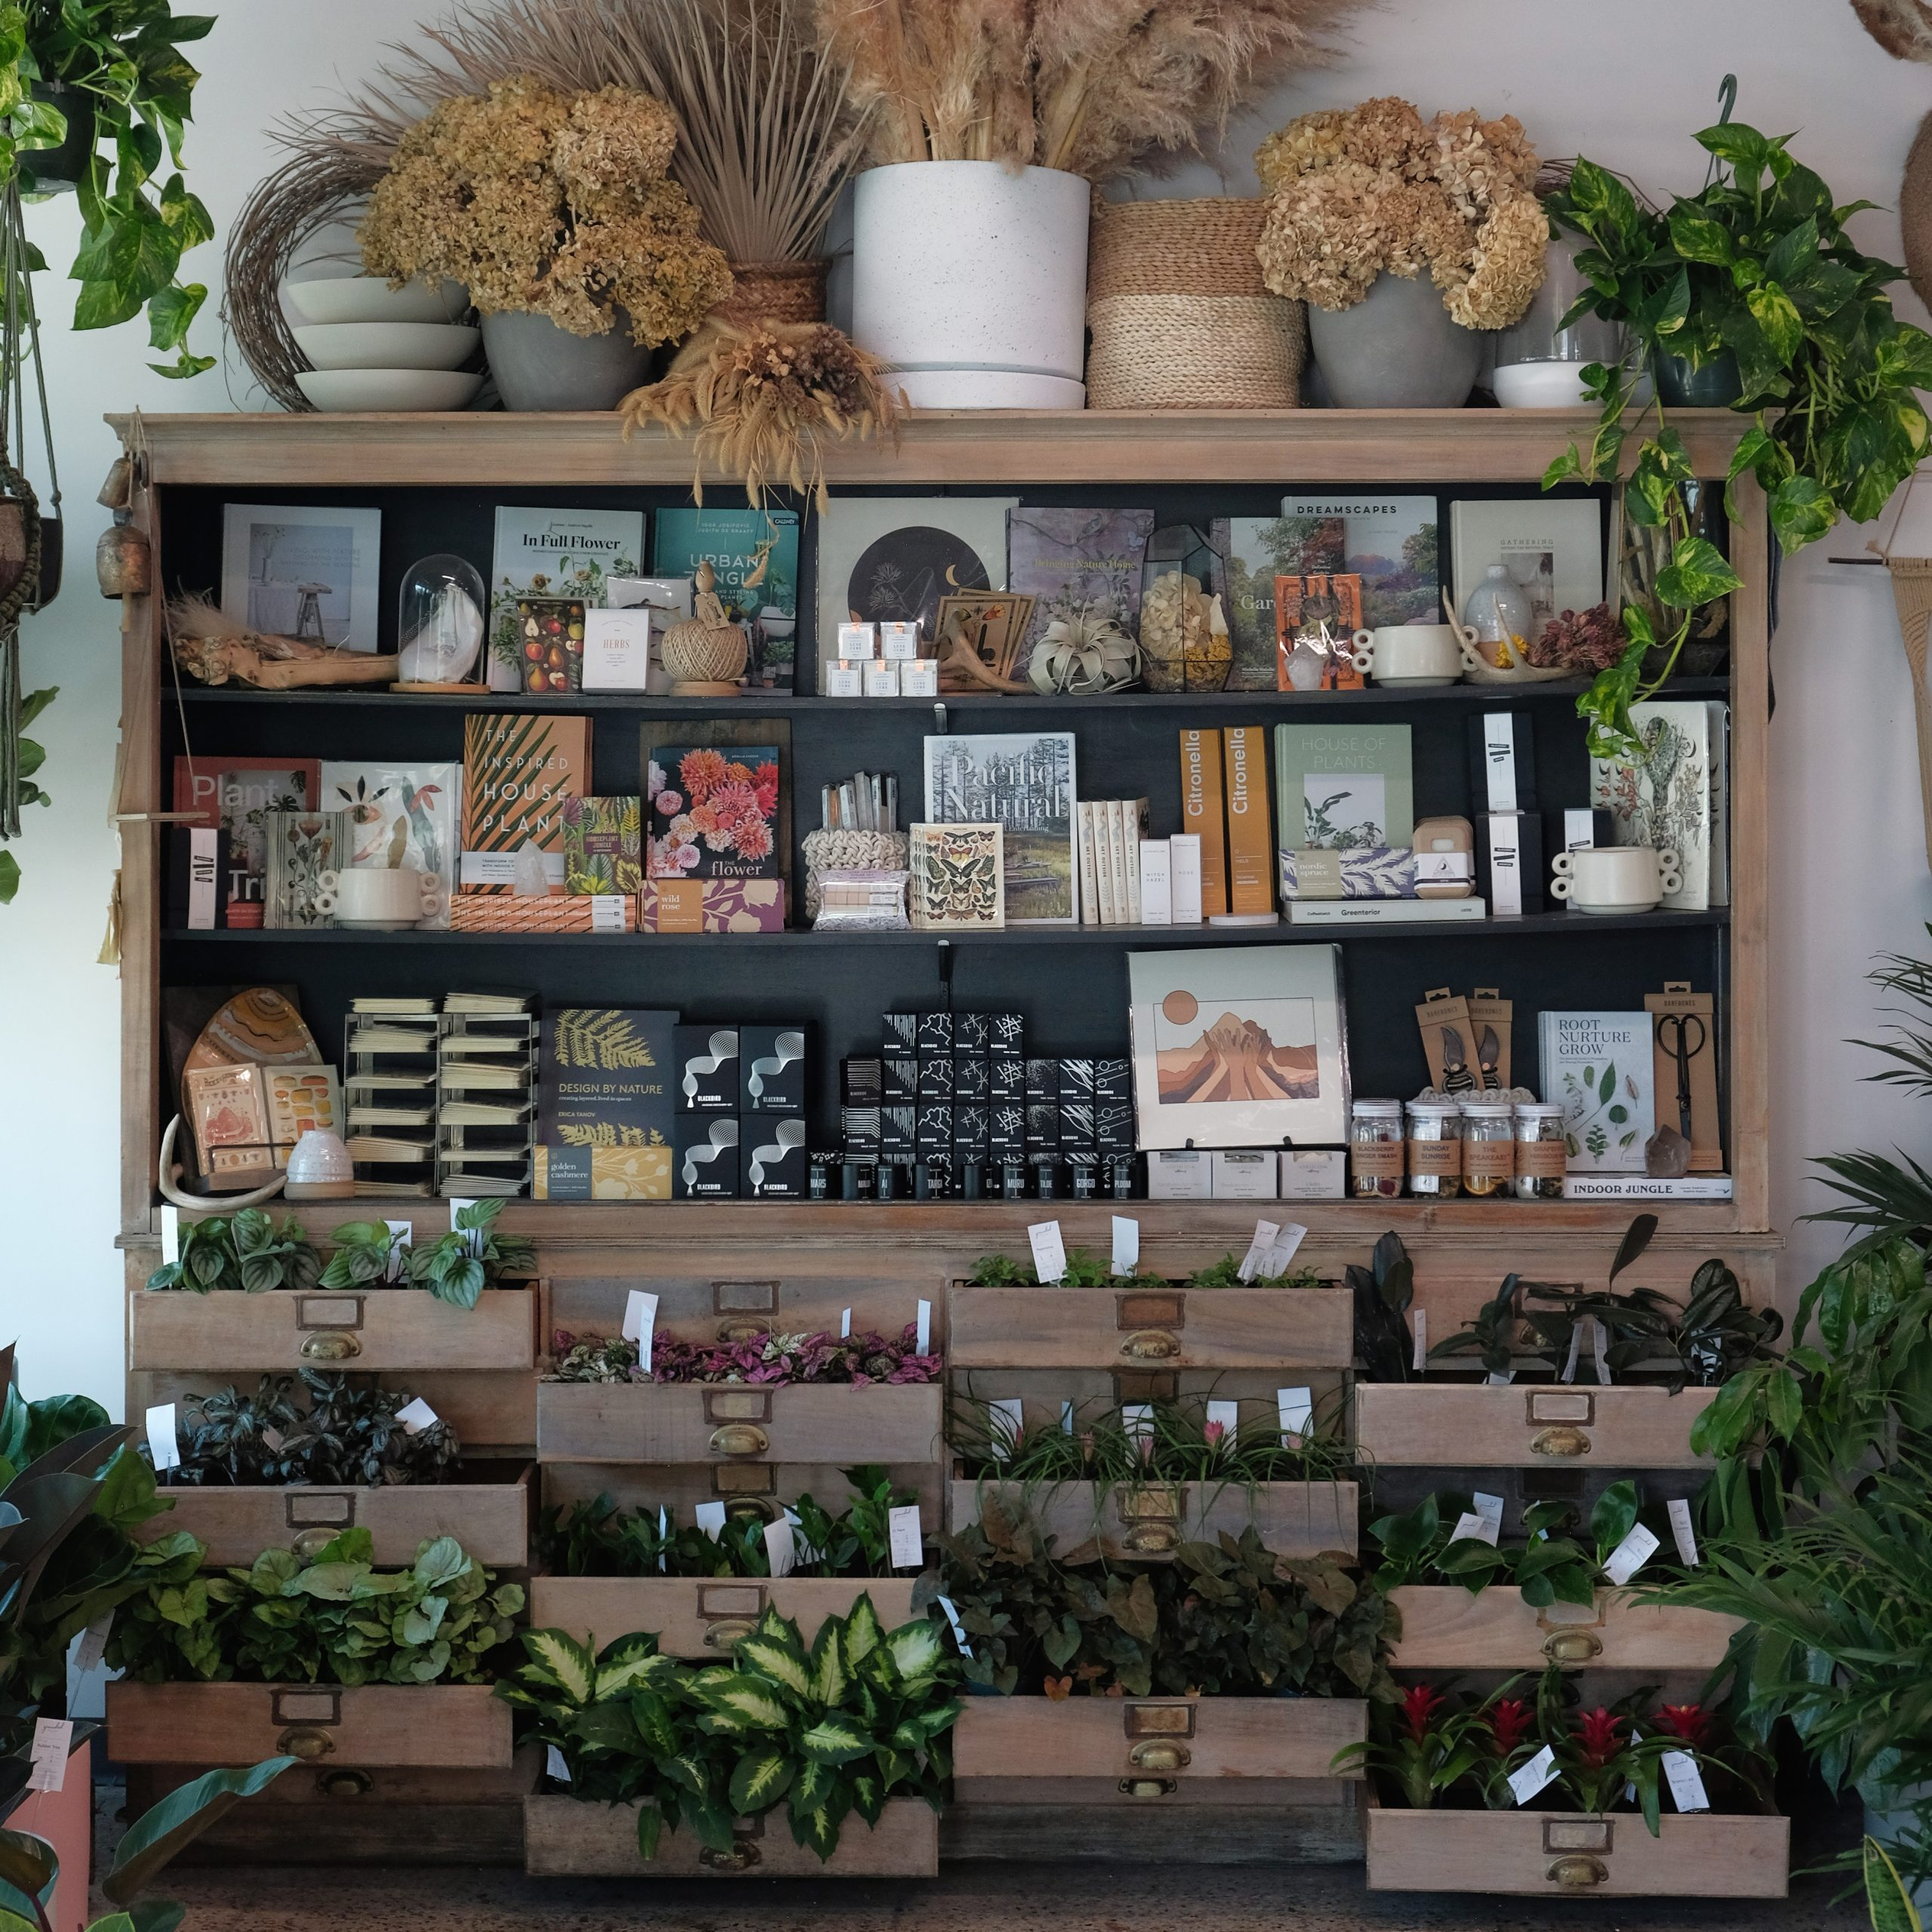 Display at Grounded Plant and Floral Co.